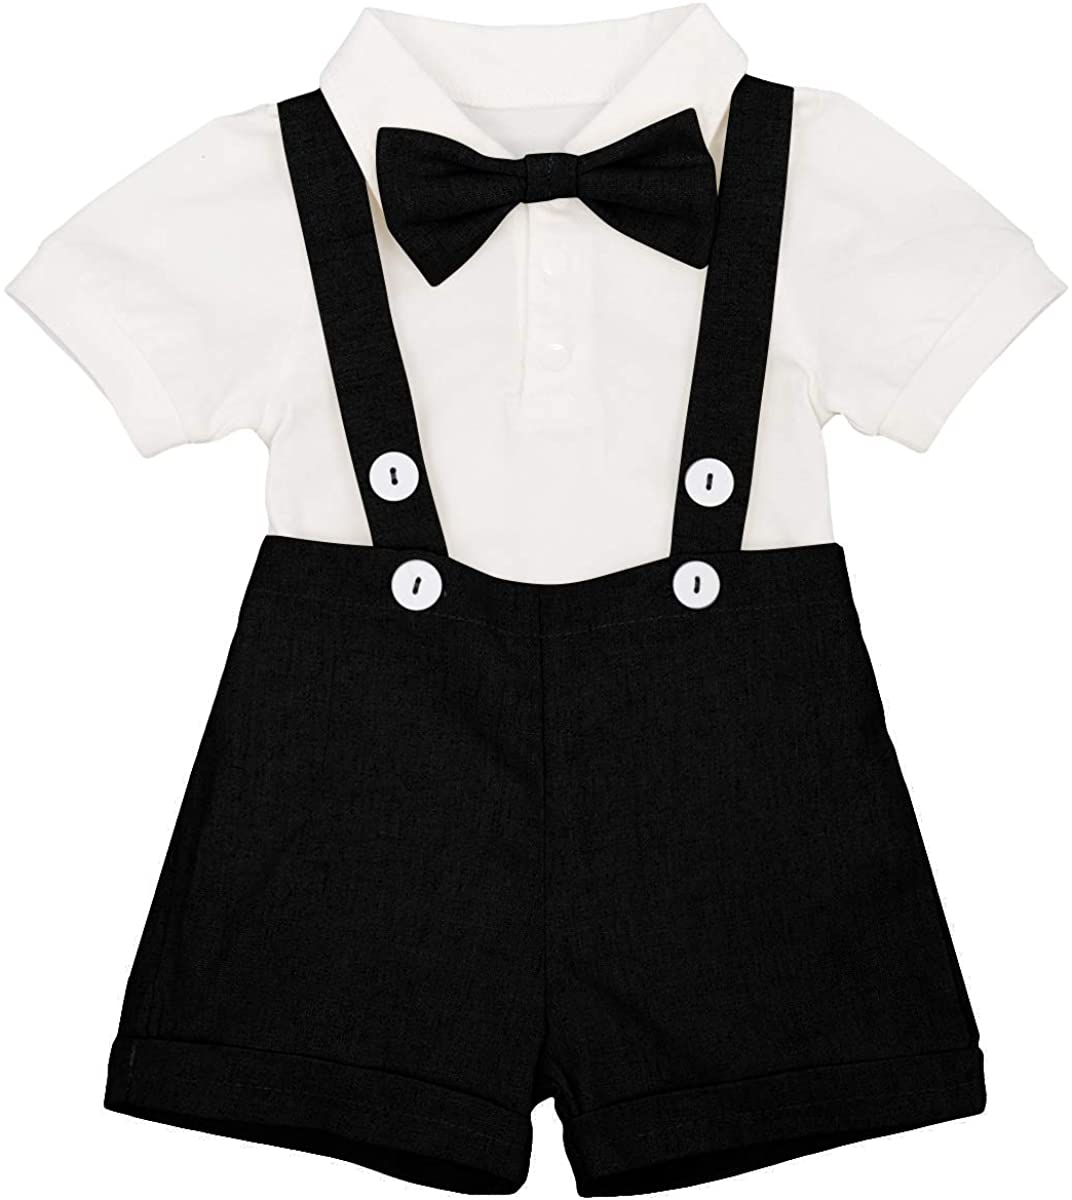 Baby Boys Formal 1st Birthday Onesie Gentleman Outfits Wedding Suit Cake Smash Bowtie Baptism Clothes